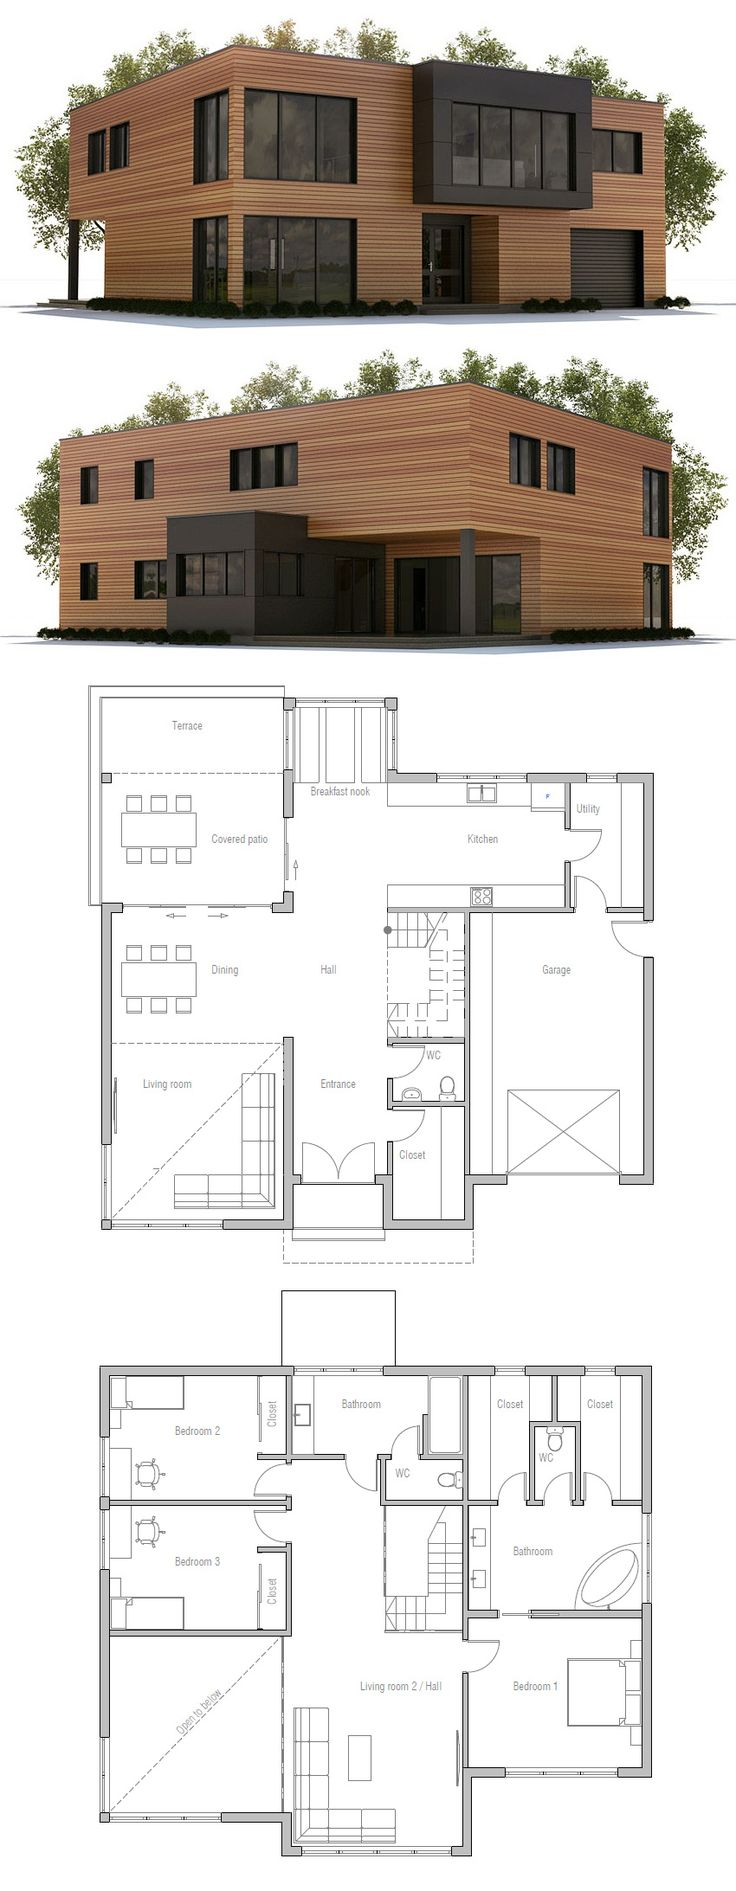 Small House Plan 44 best house images